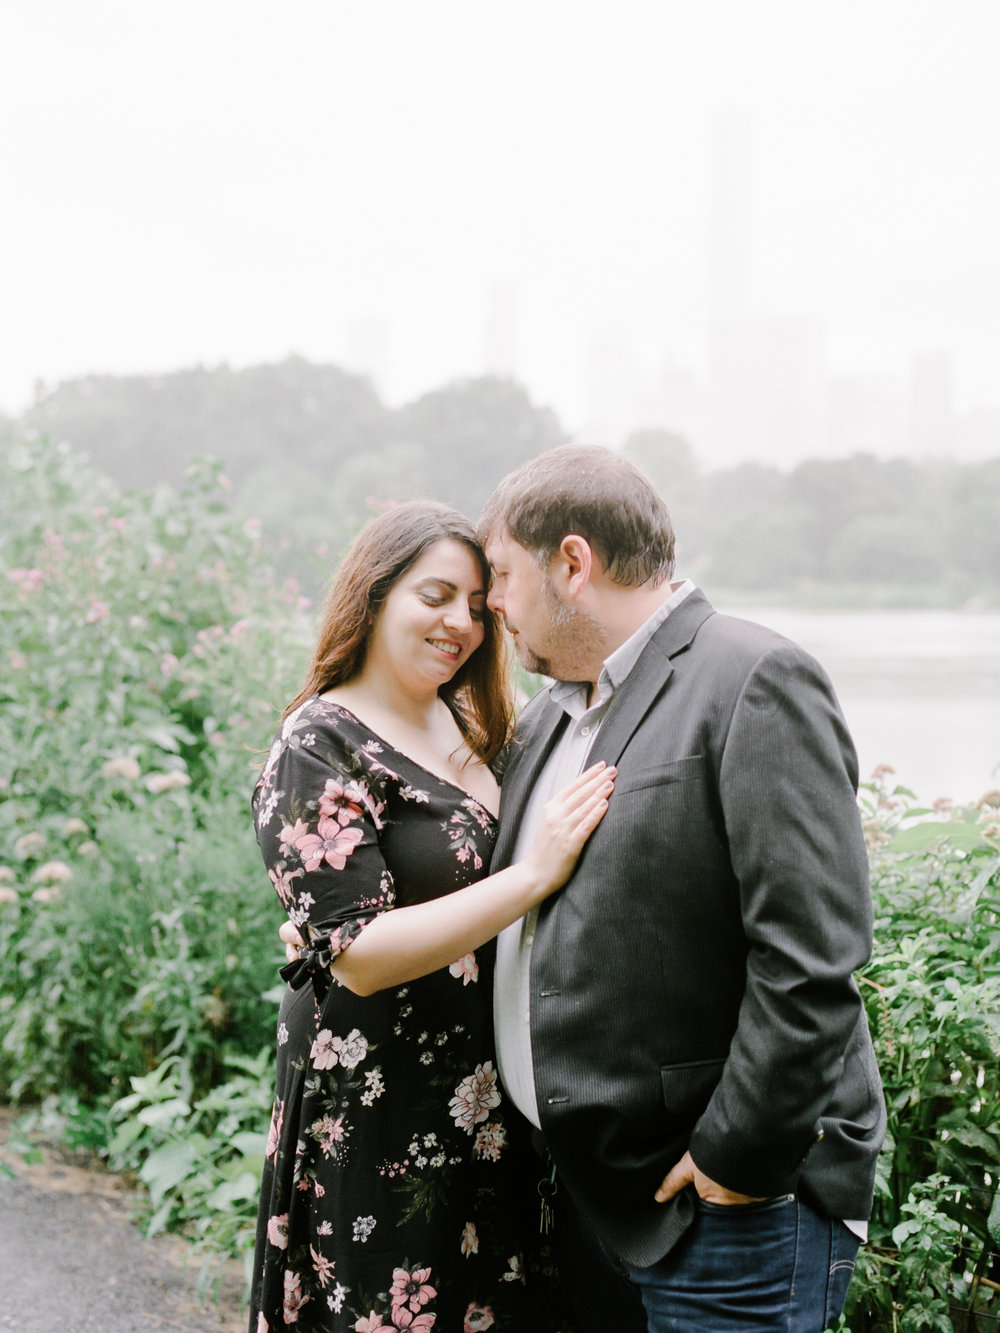 Central-Park-NYC-Engagement-Session-film-photography-6.jpg